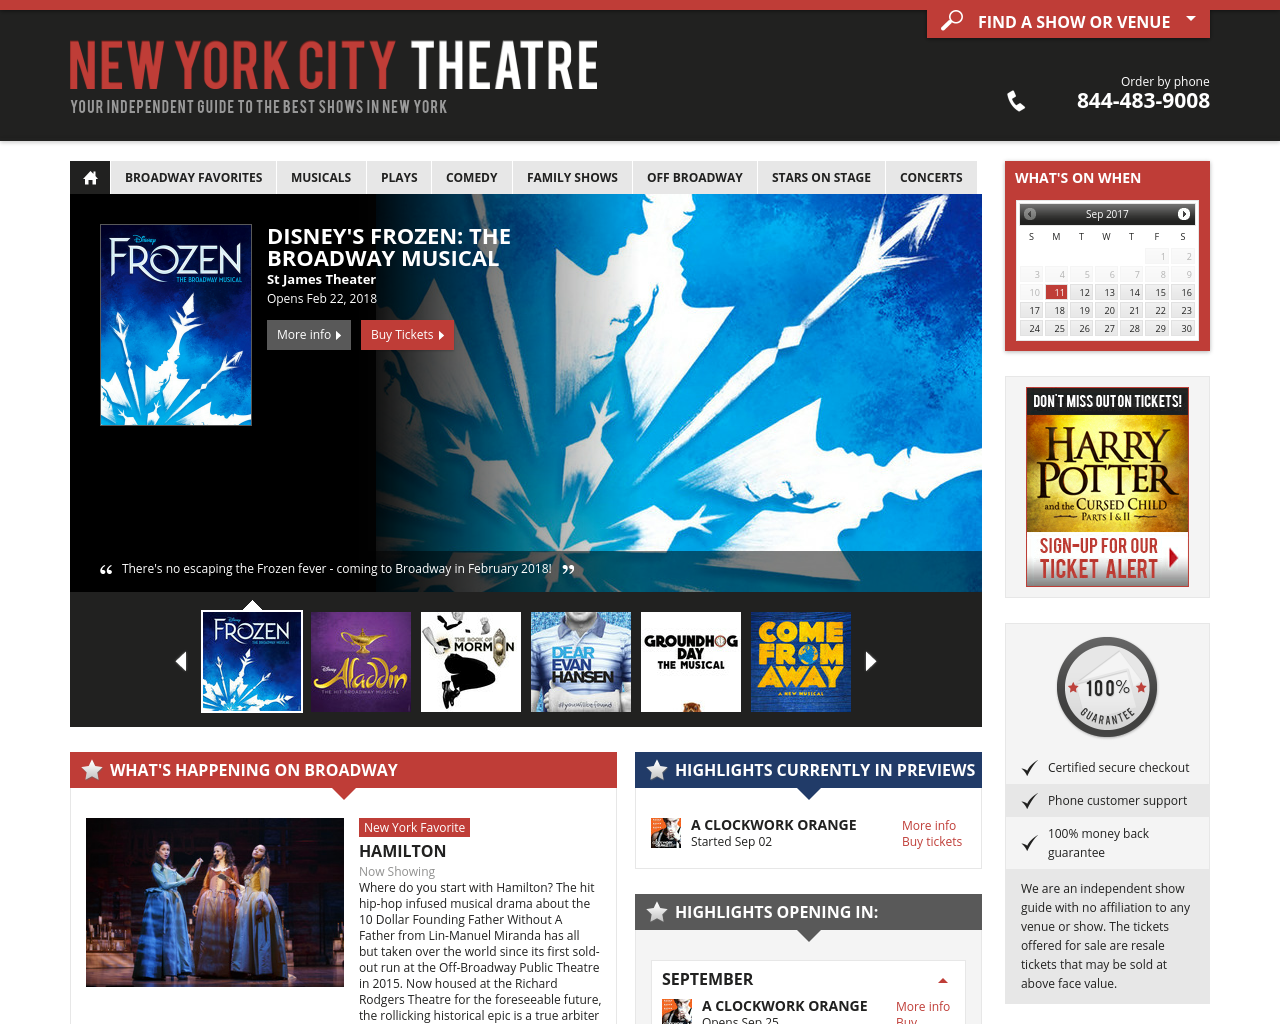 New-York-City-Theatre-Advertising-Reviews-Pricing